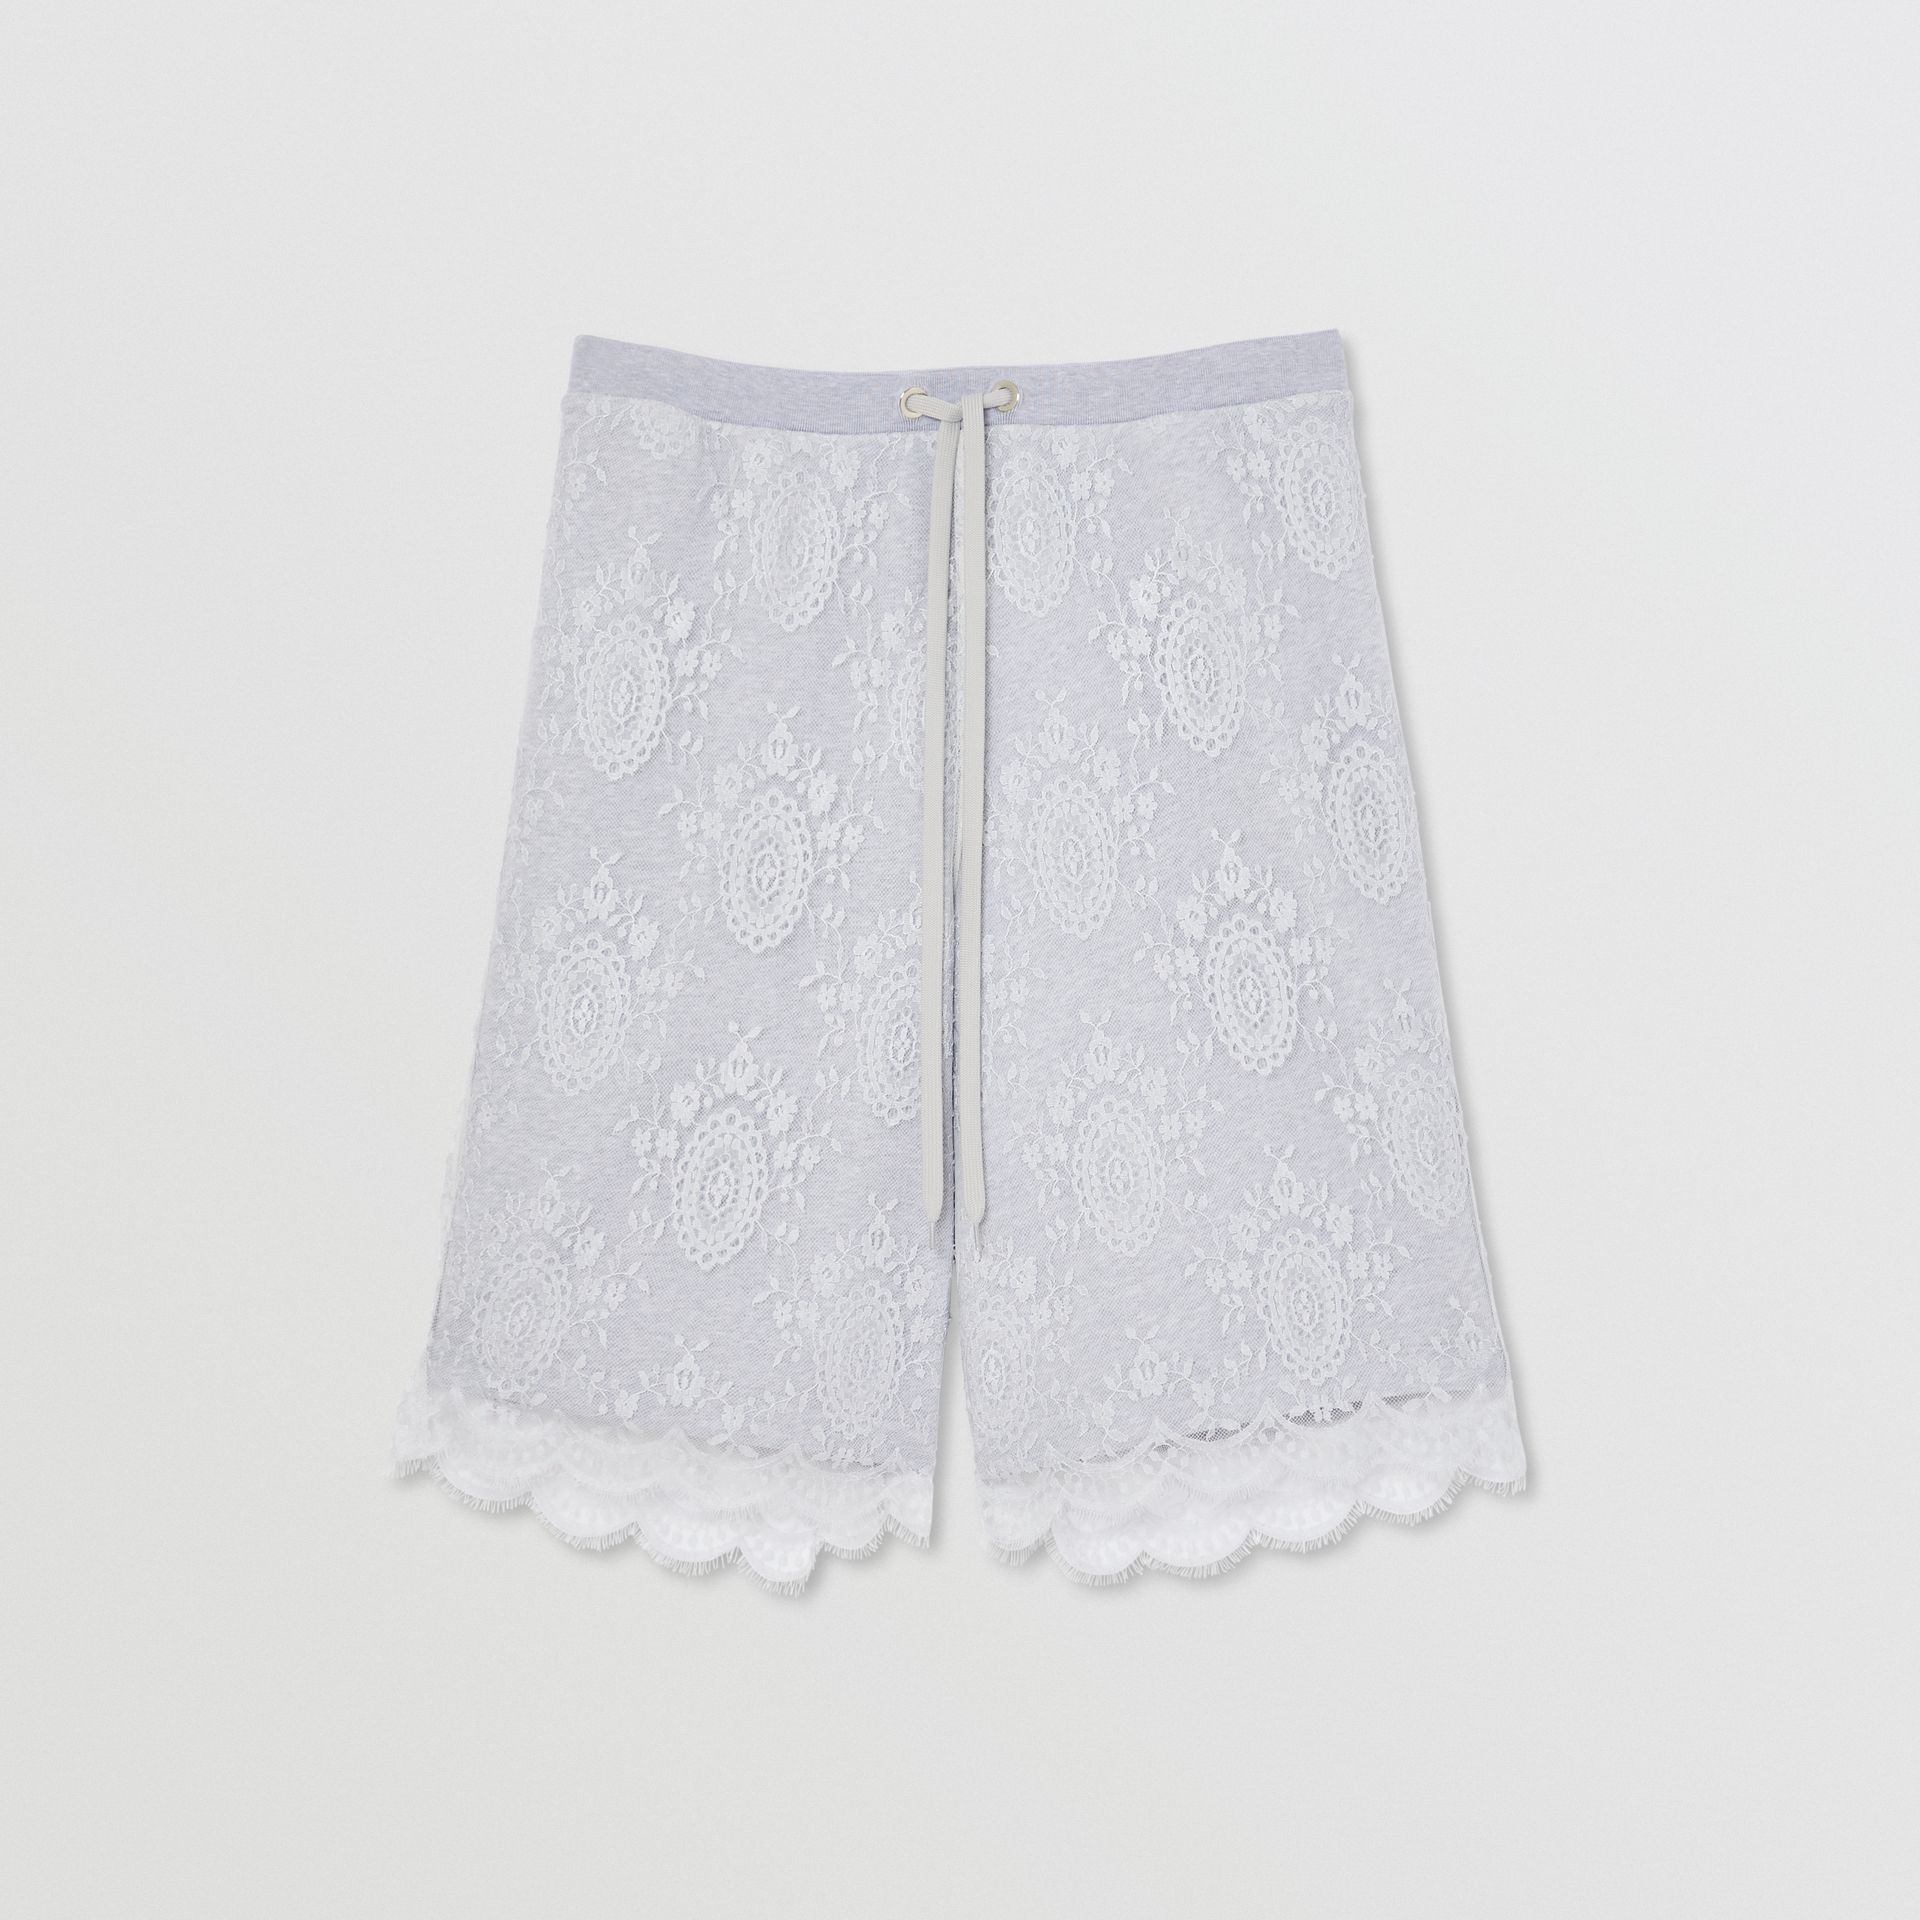 Chantilly Lace and Cotton Drawcord Shorts in Light Pebble Grey | Burberry - gallery image 3